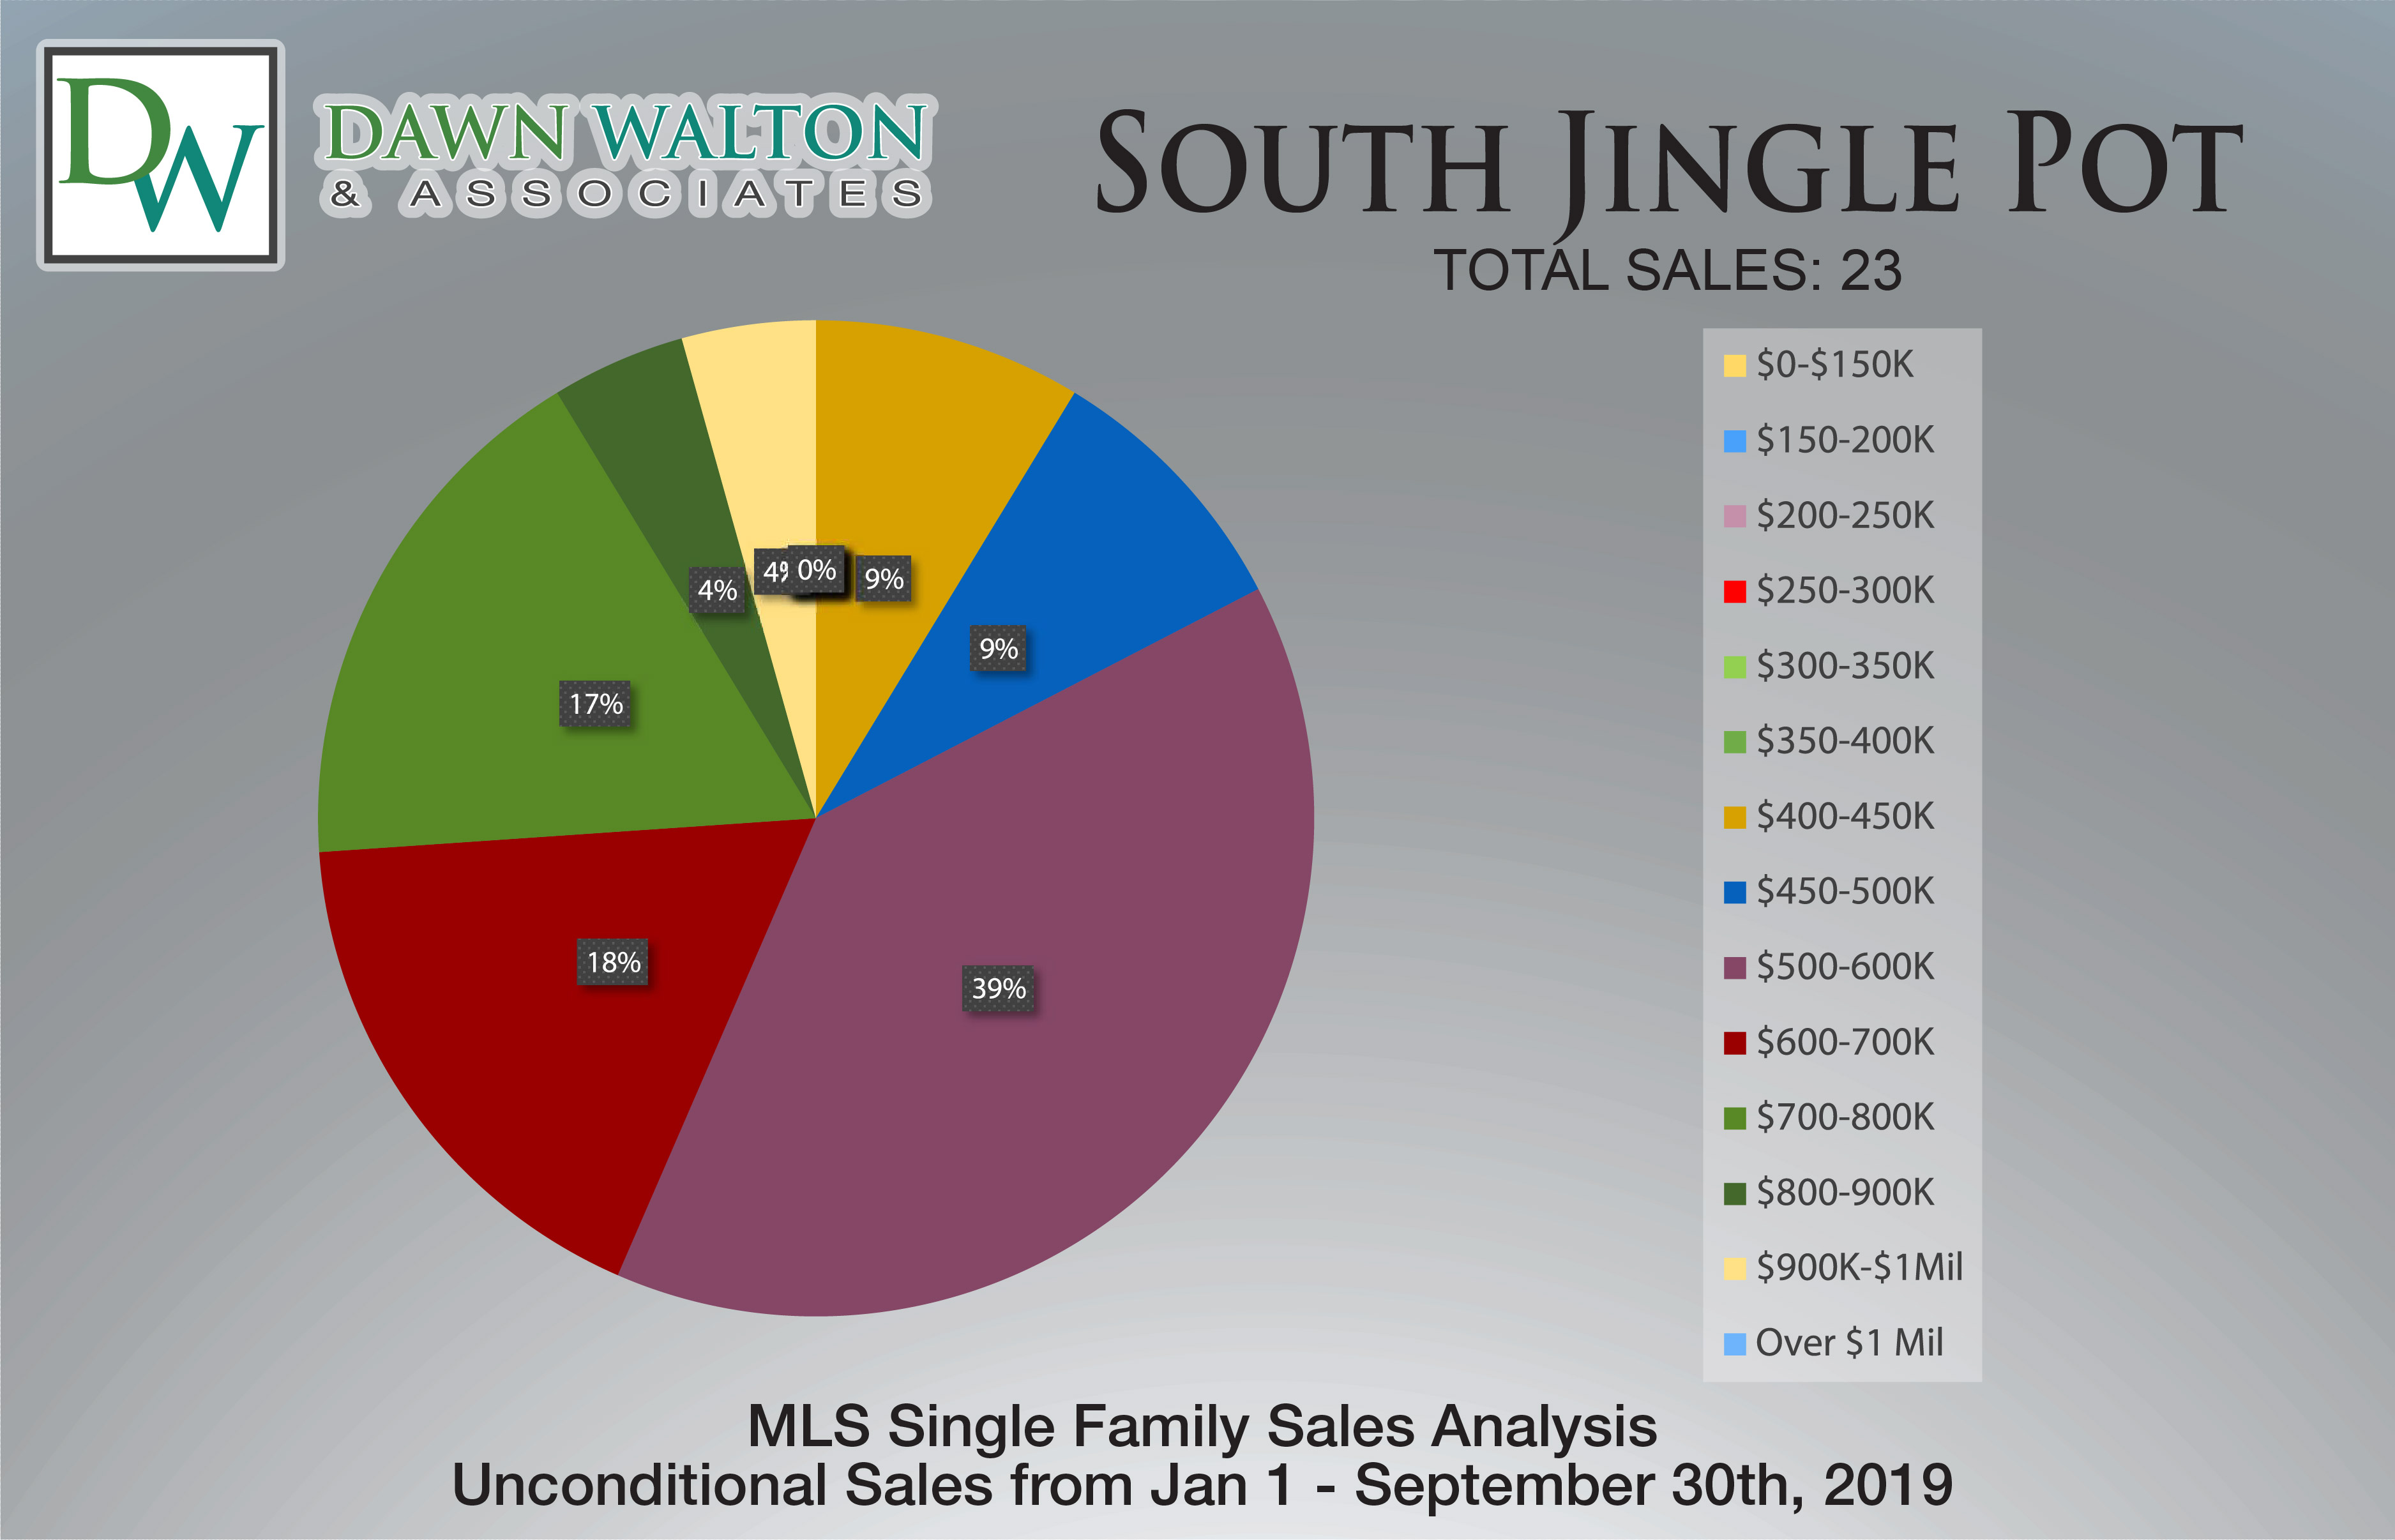 South Jingle Pot Real Estate Market Stats Price Percentage Jan 1-Sept 30 2019 - Nanaimo Realtor Dawn Walton